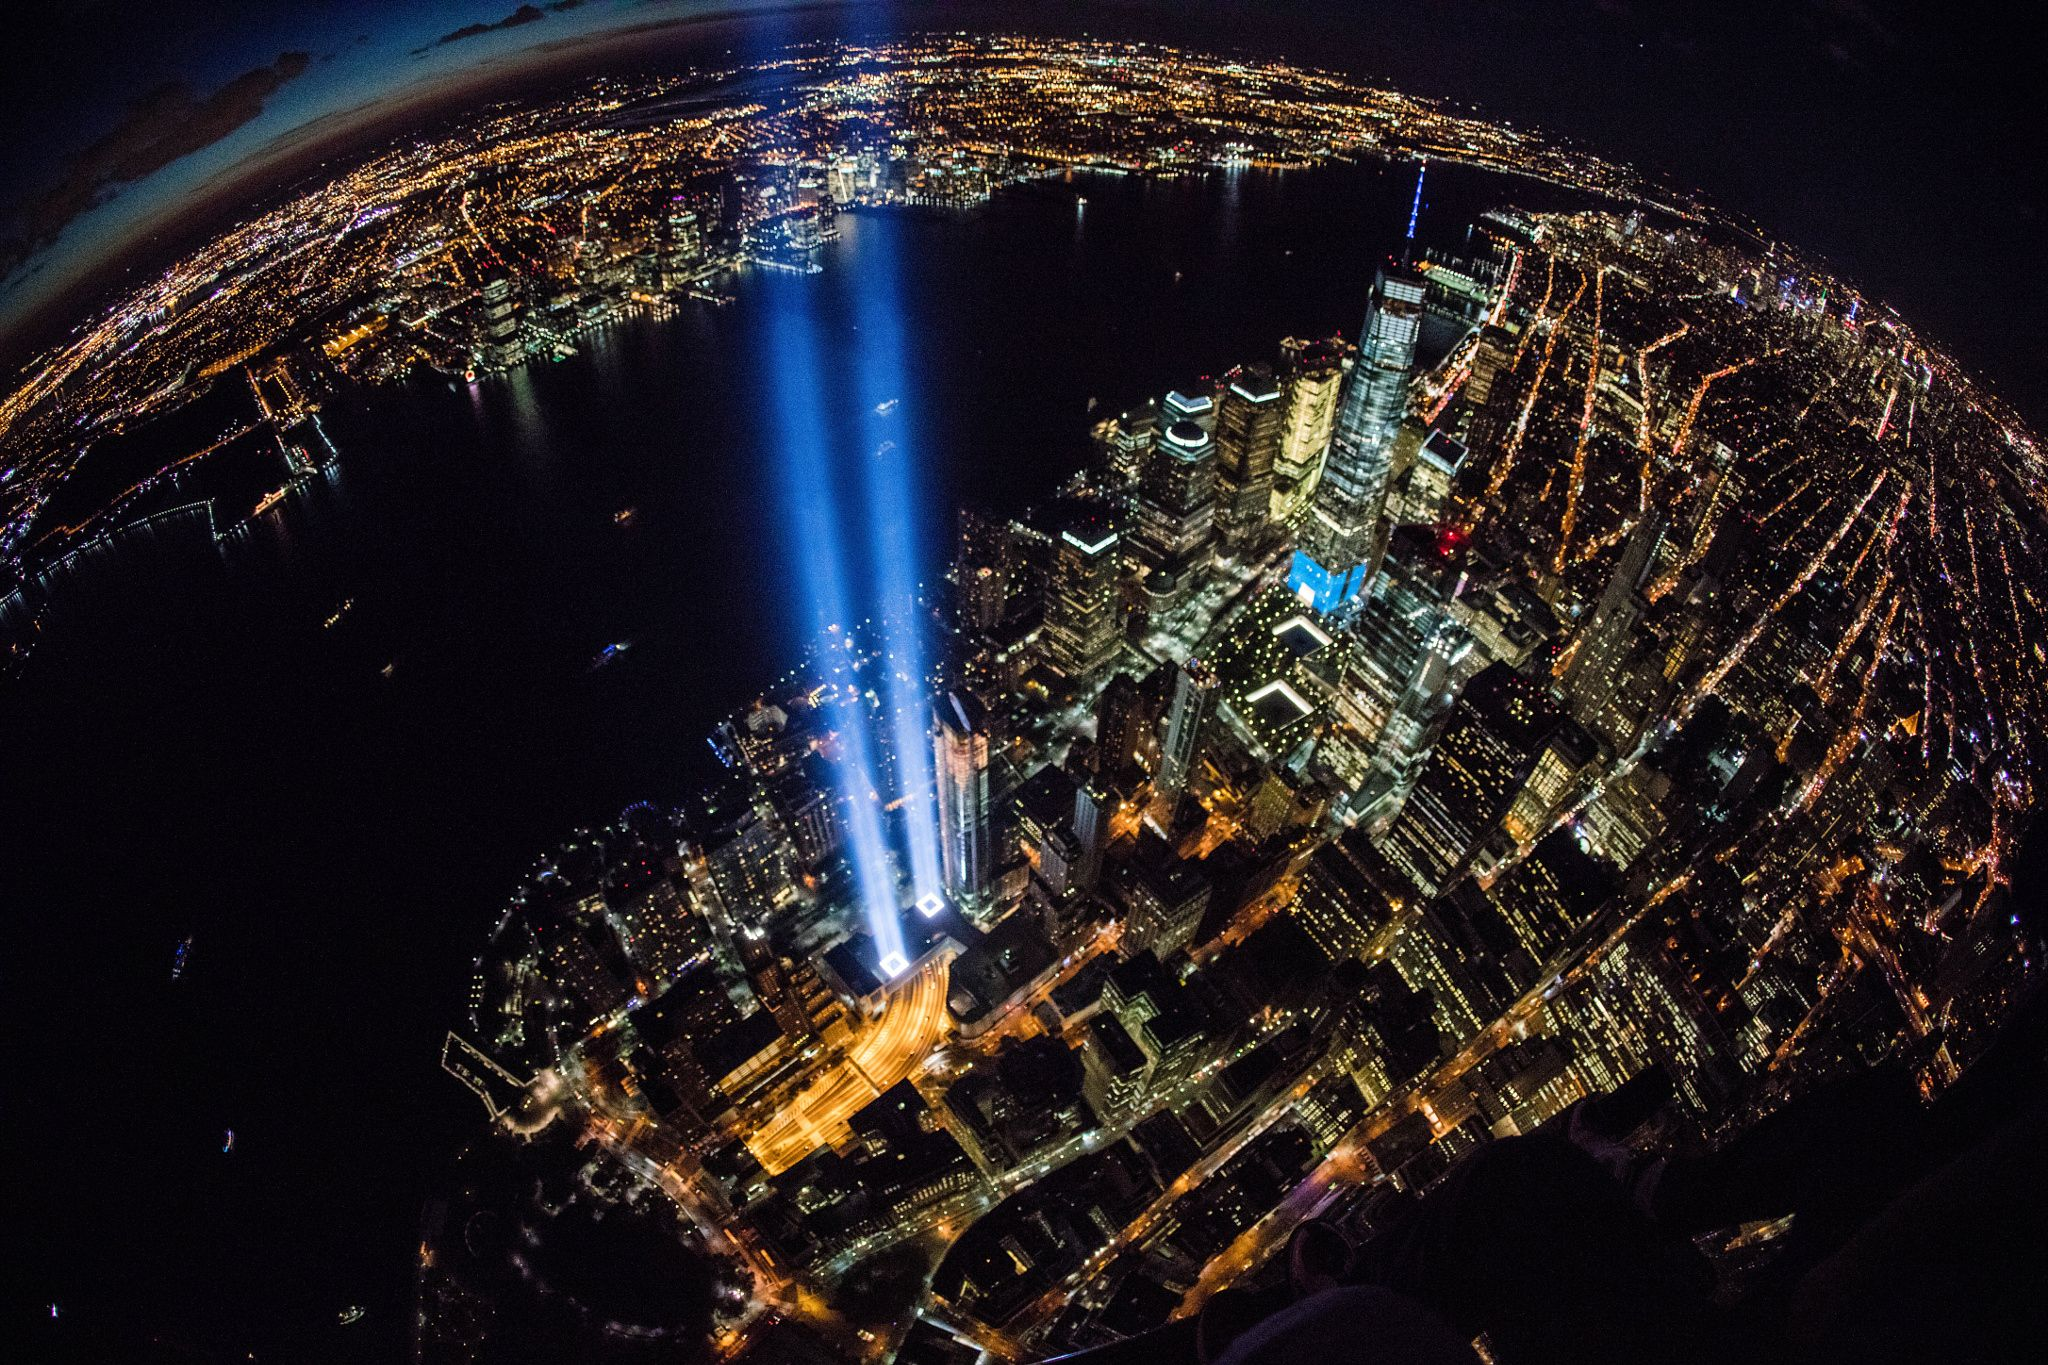 New York City's September 11th Tribute in Light by Anthony Quintano on 500px